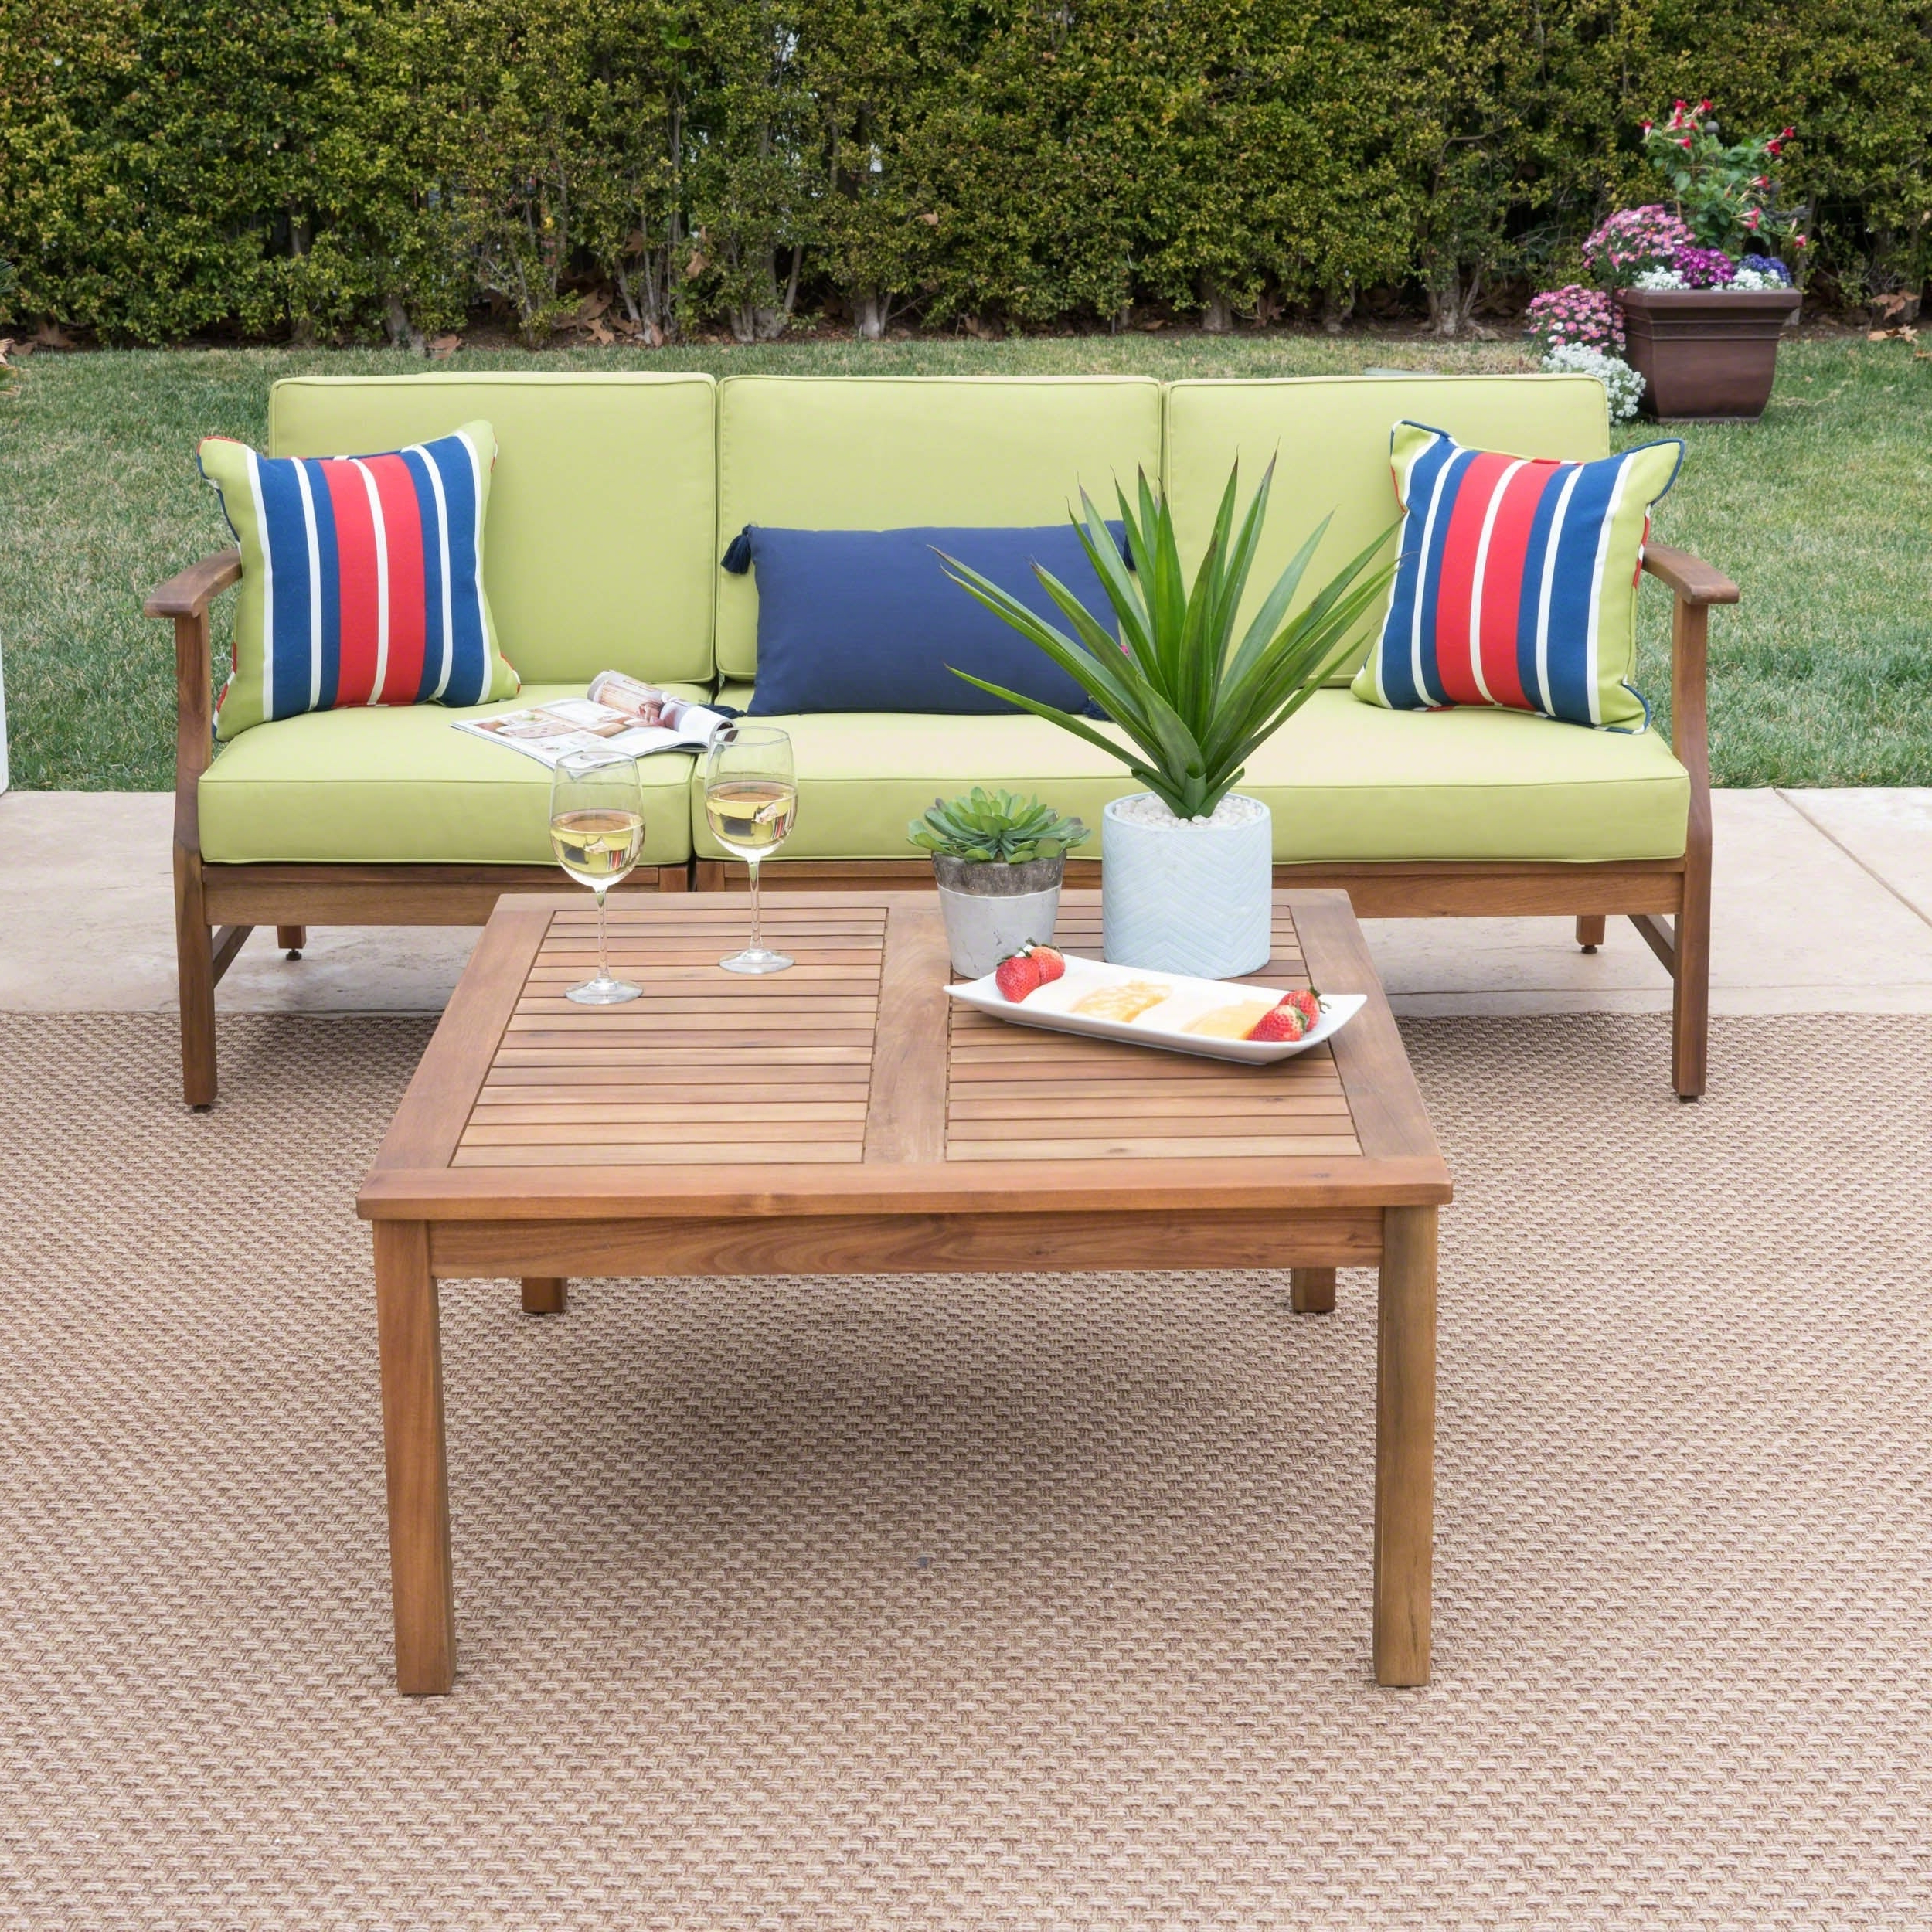 Newest O'kean Teak Patio Sofas With Cushions With Regard To Perla Outdoor Acacia Wood 4 Piece Sofa And Table Set With Cushions Christopher Knight Home (View 11 of 25)